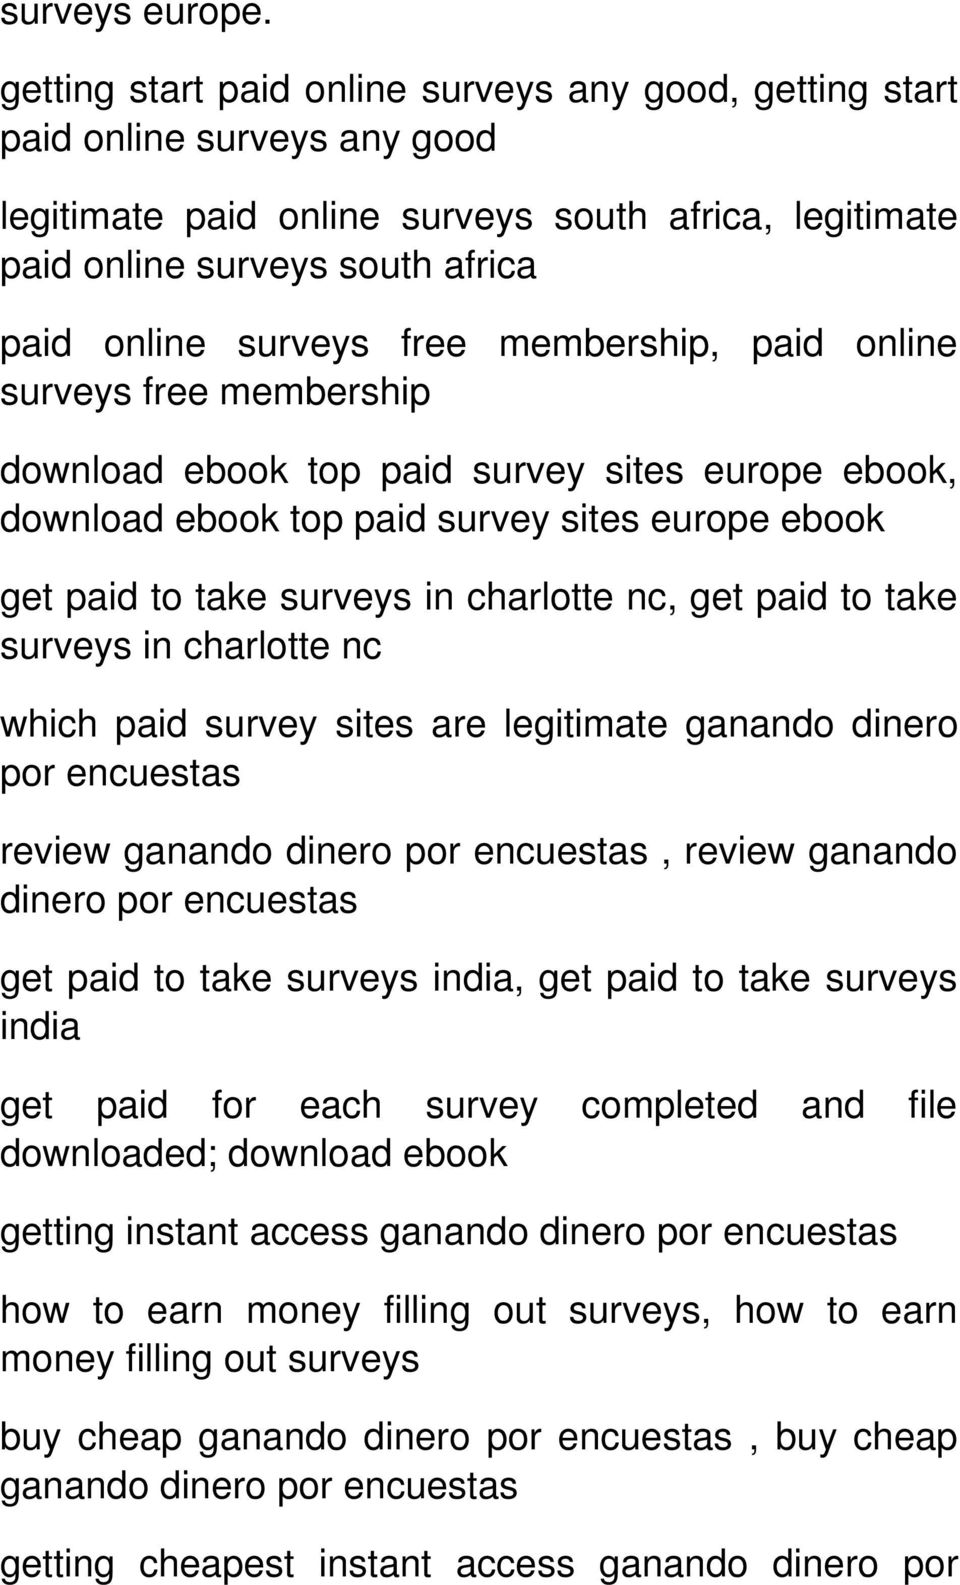 free membership, paid online surveys free membership download ebook top paid survey sites europe ebook, download ebook top paid survey sites europe ebook get paid to take surveys in charlotte nc, get